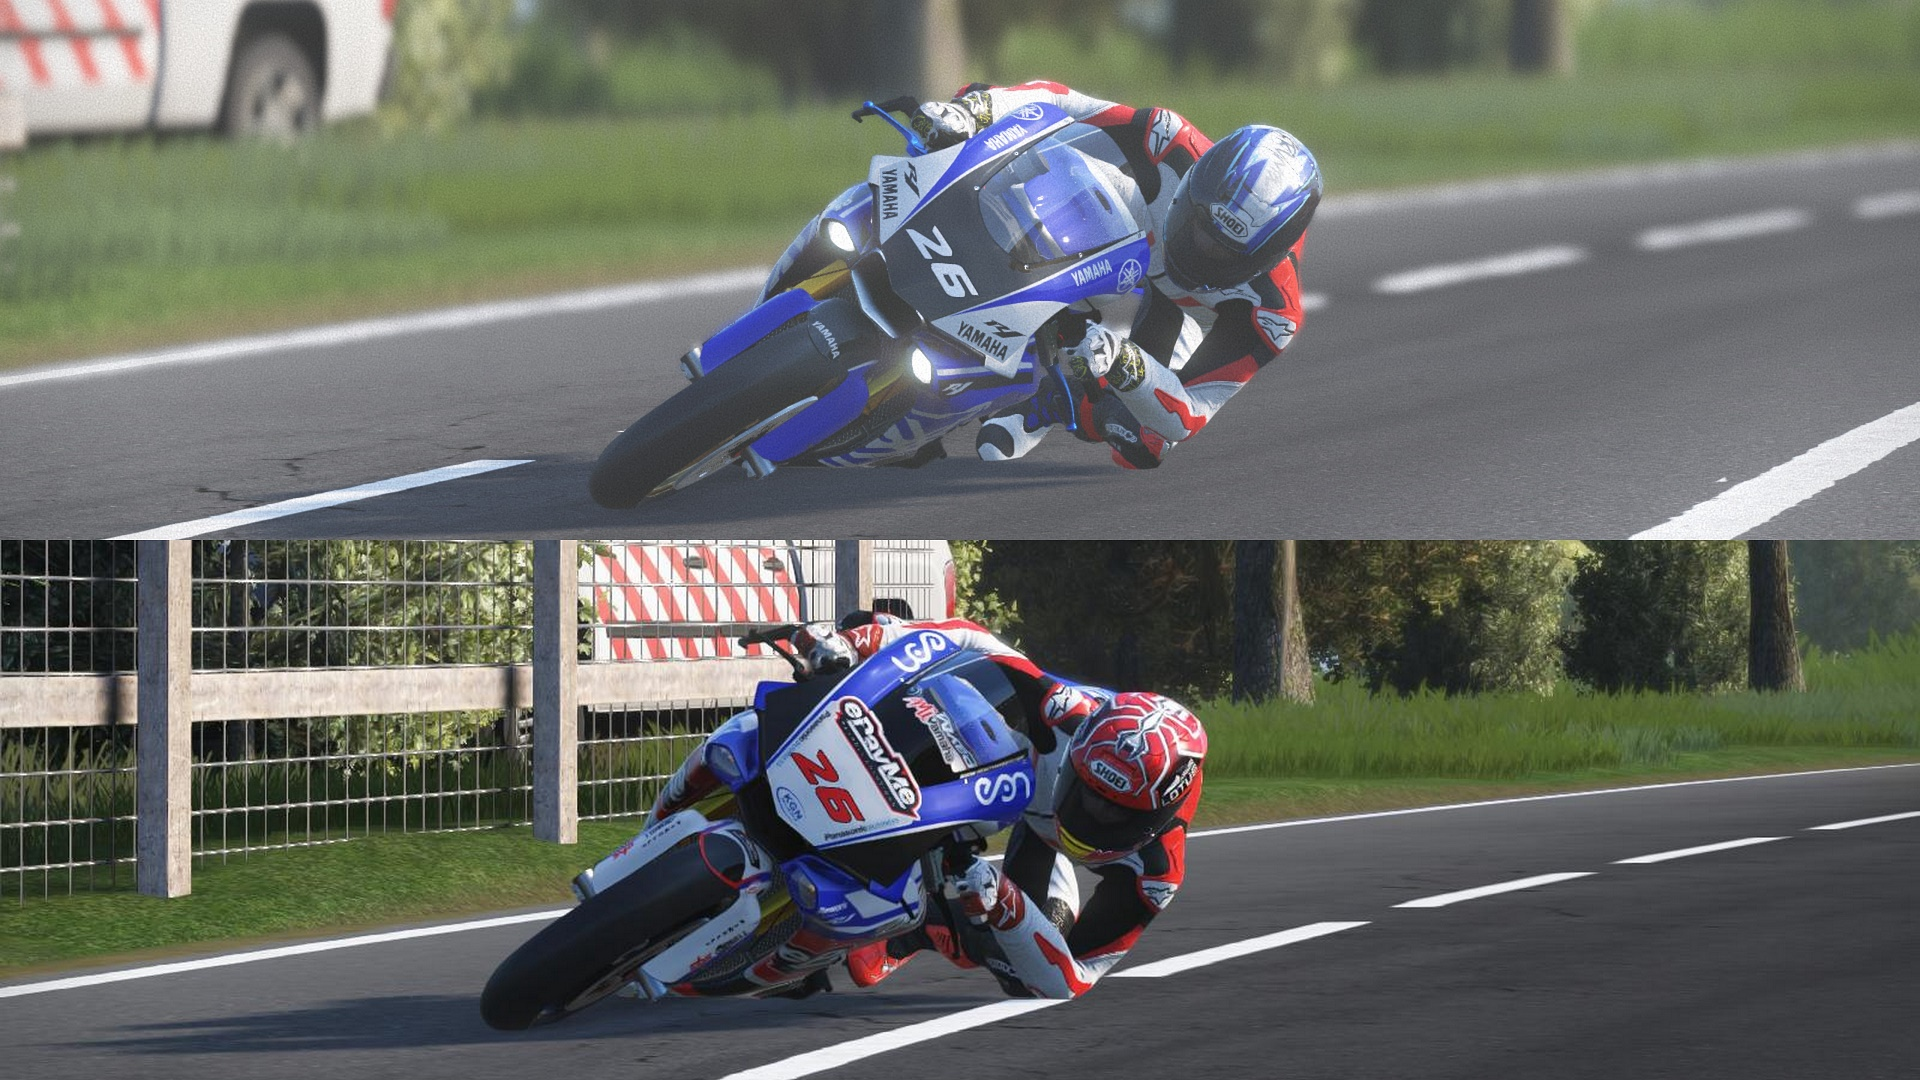 Original Ride 2 Riding Style vs MotoGp Riding Style.jpg